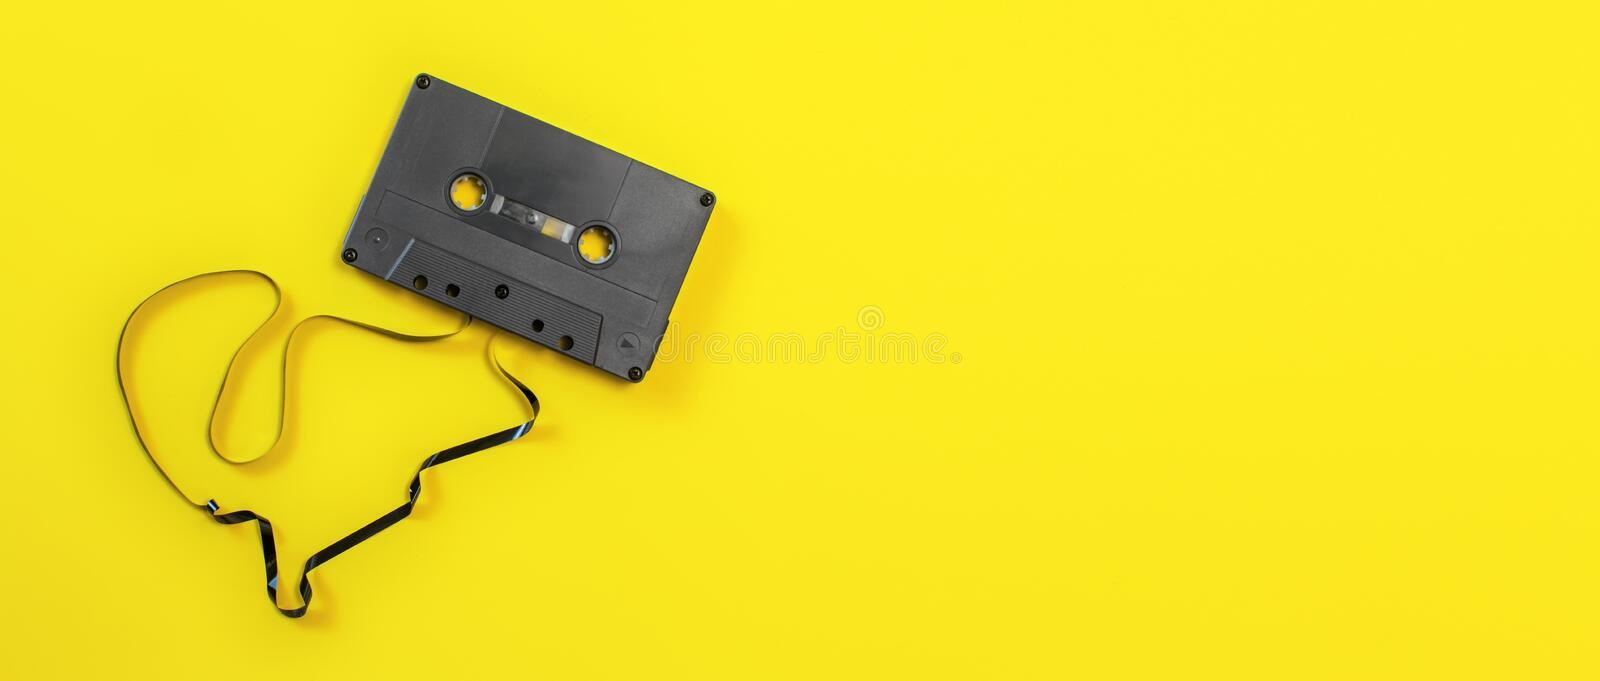 Overhead shot - magnetic audio cassette with some tape out, on yellow board, wide banner space for text on right side.  royalty free stock image